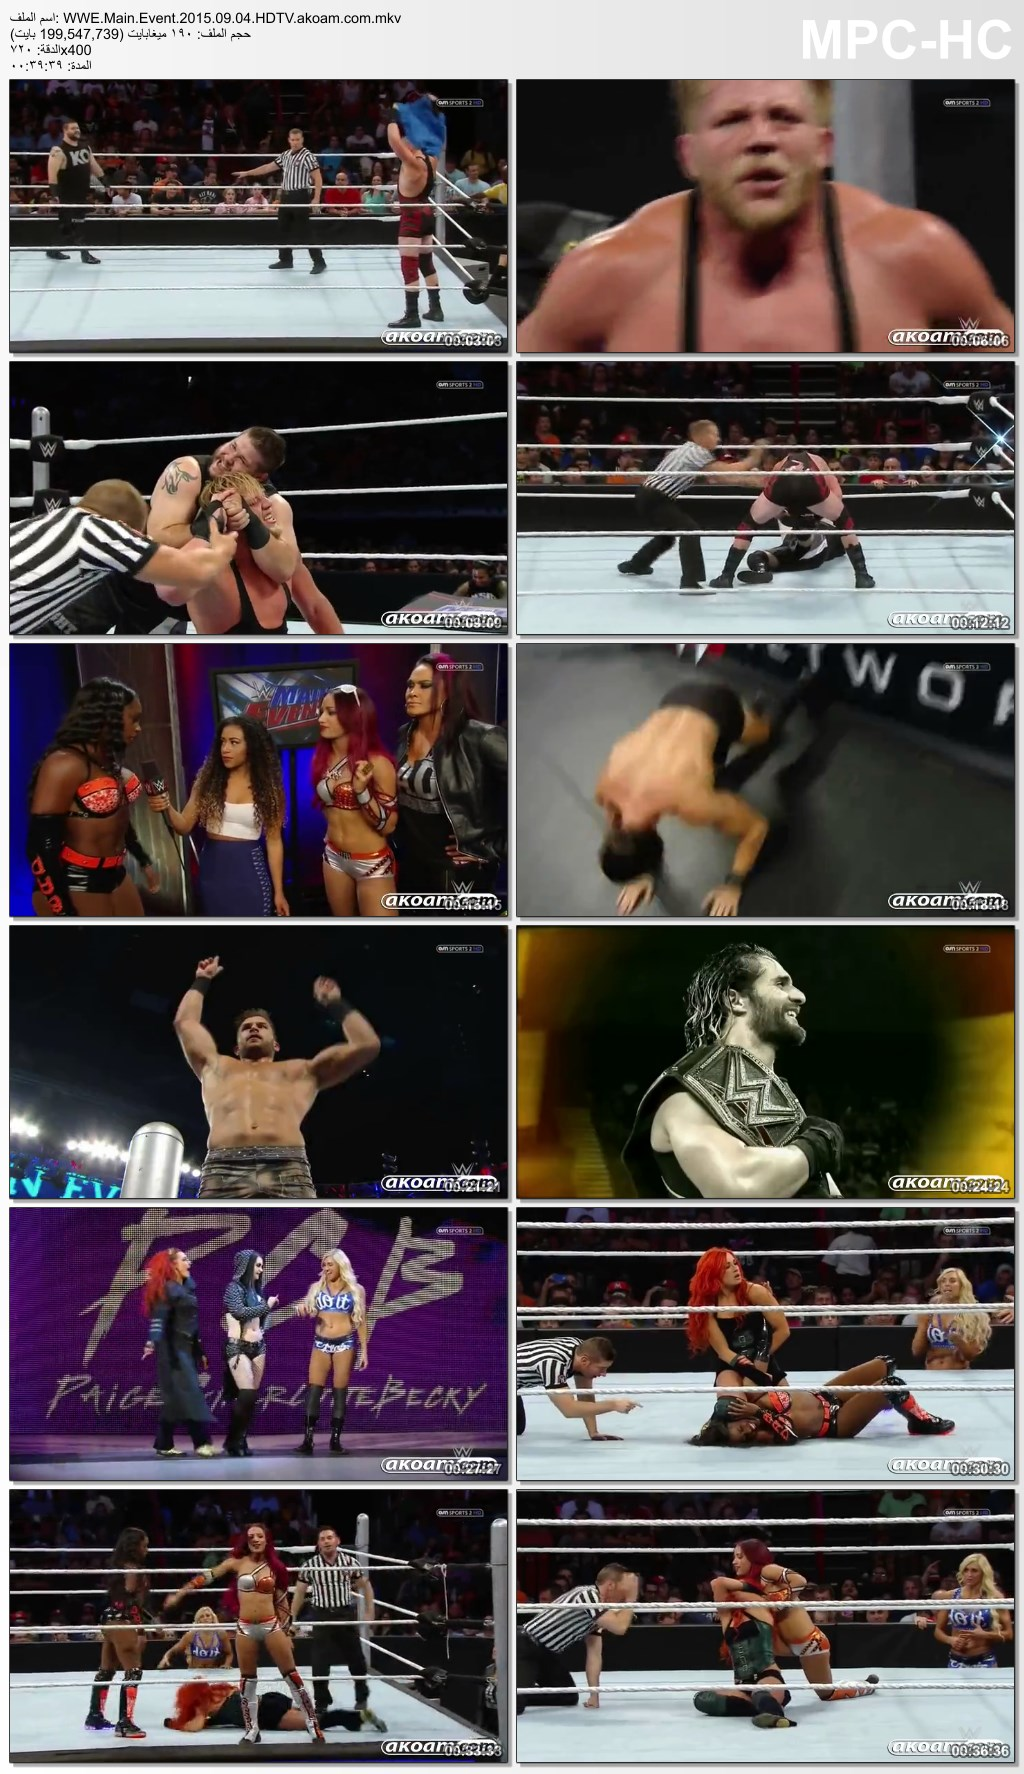 WWE Main Event,Main Event,WWE,المين ايفنت